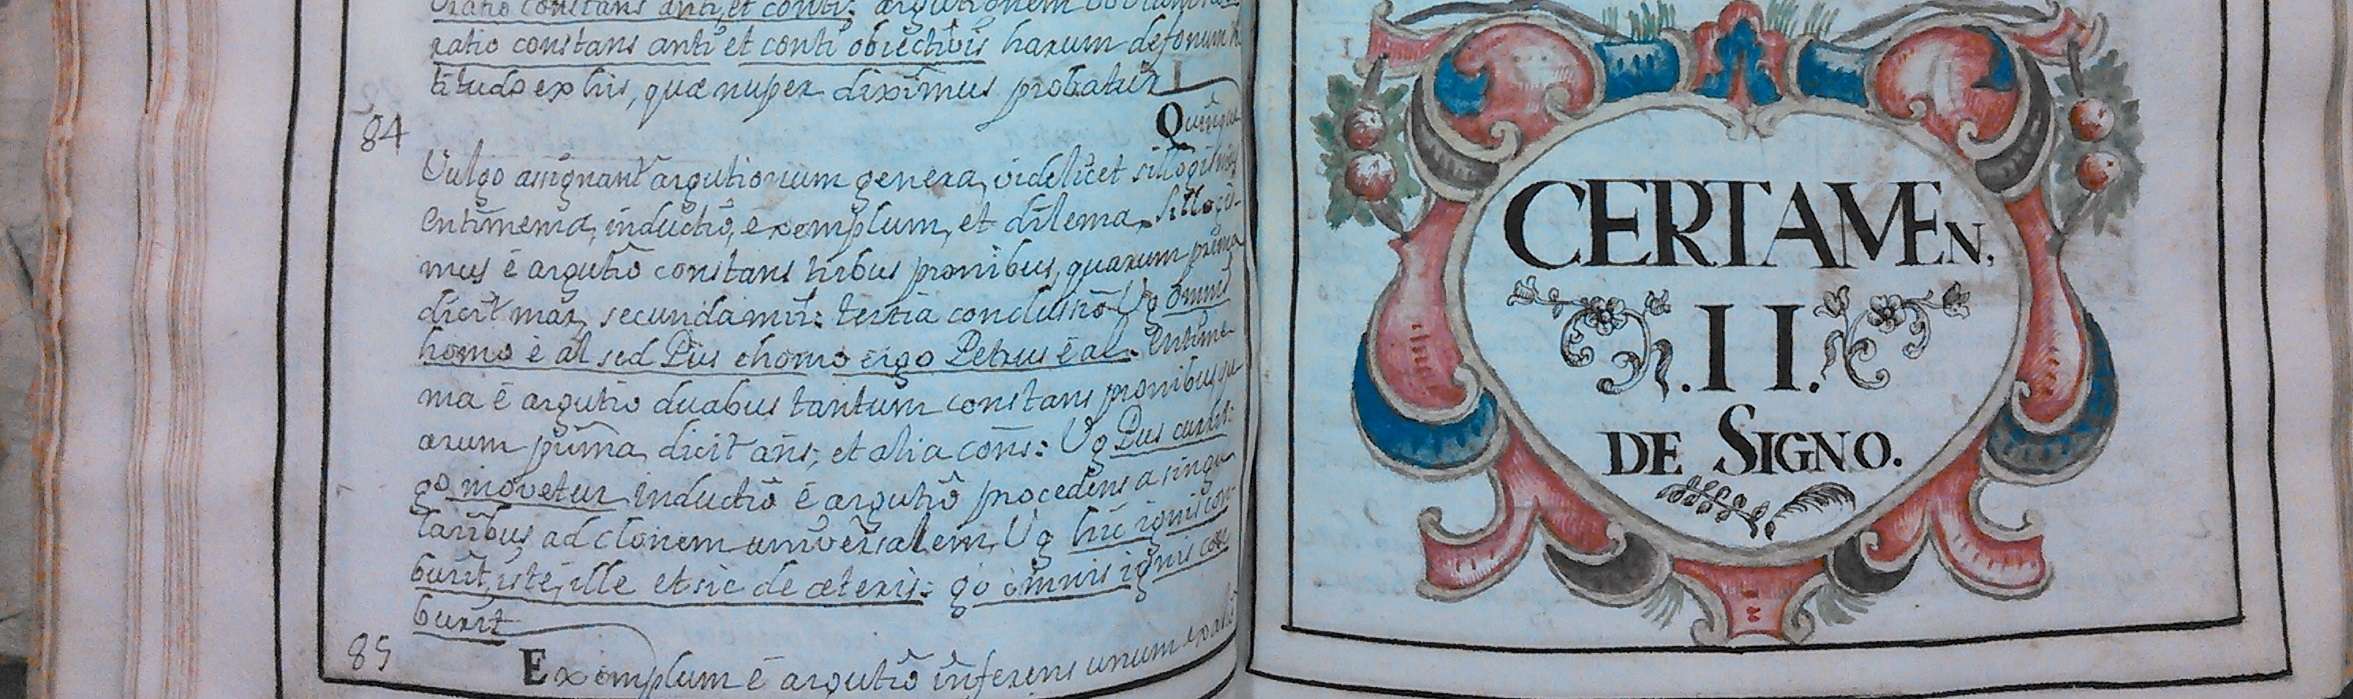 Image of manuscript text and decorated chapter heading from a philosophy textbook, in series 1, volume 2 of the Catholic School Manuscripts Collection.